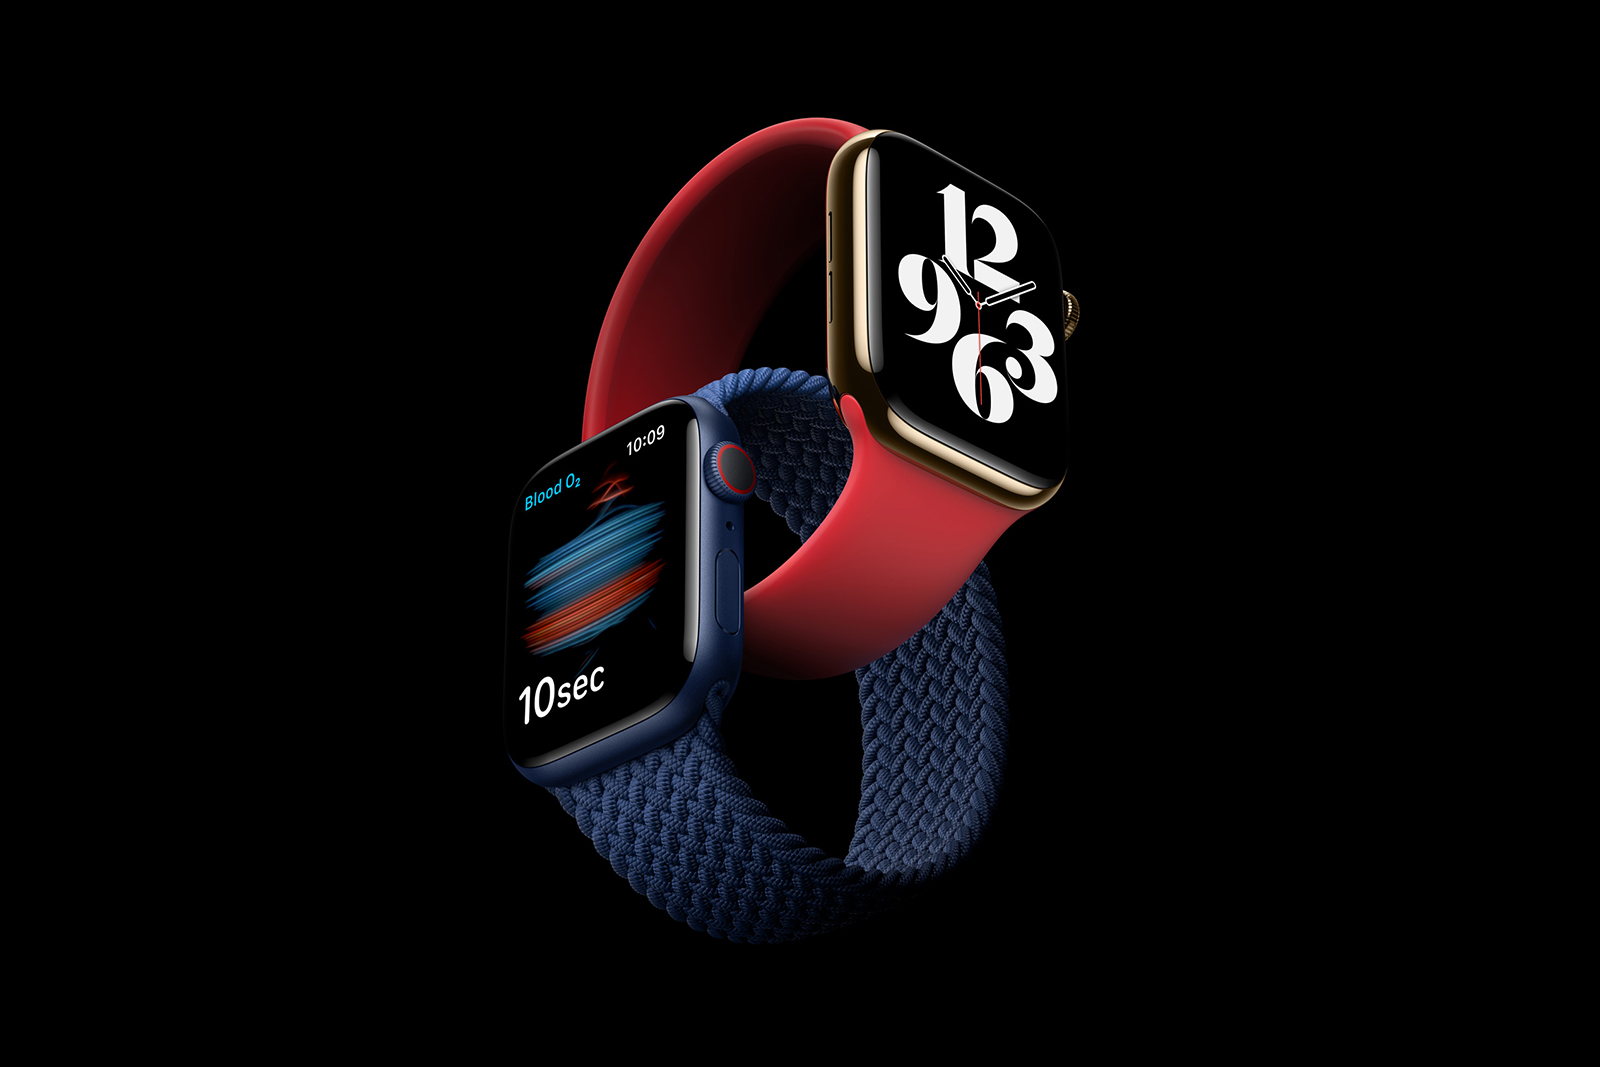 The Apple Watch Series 6 brings with it some new colors but a similar design